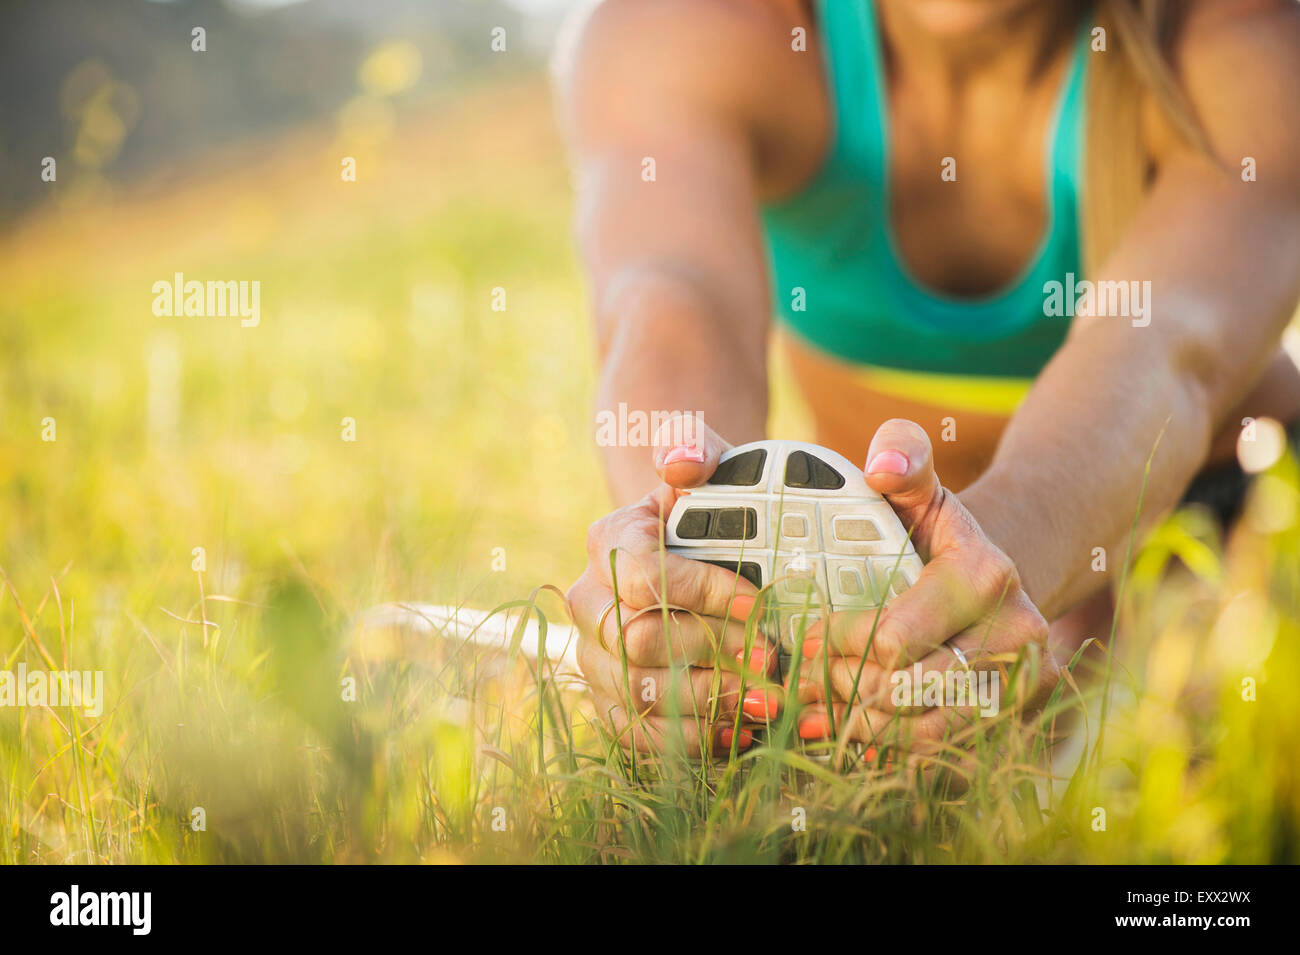 Woman exercising in field - Stock Image